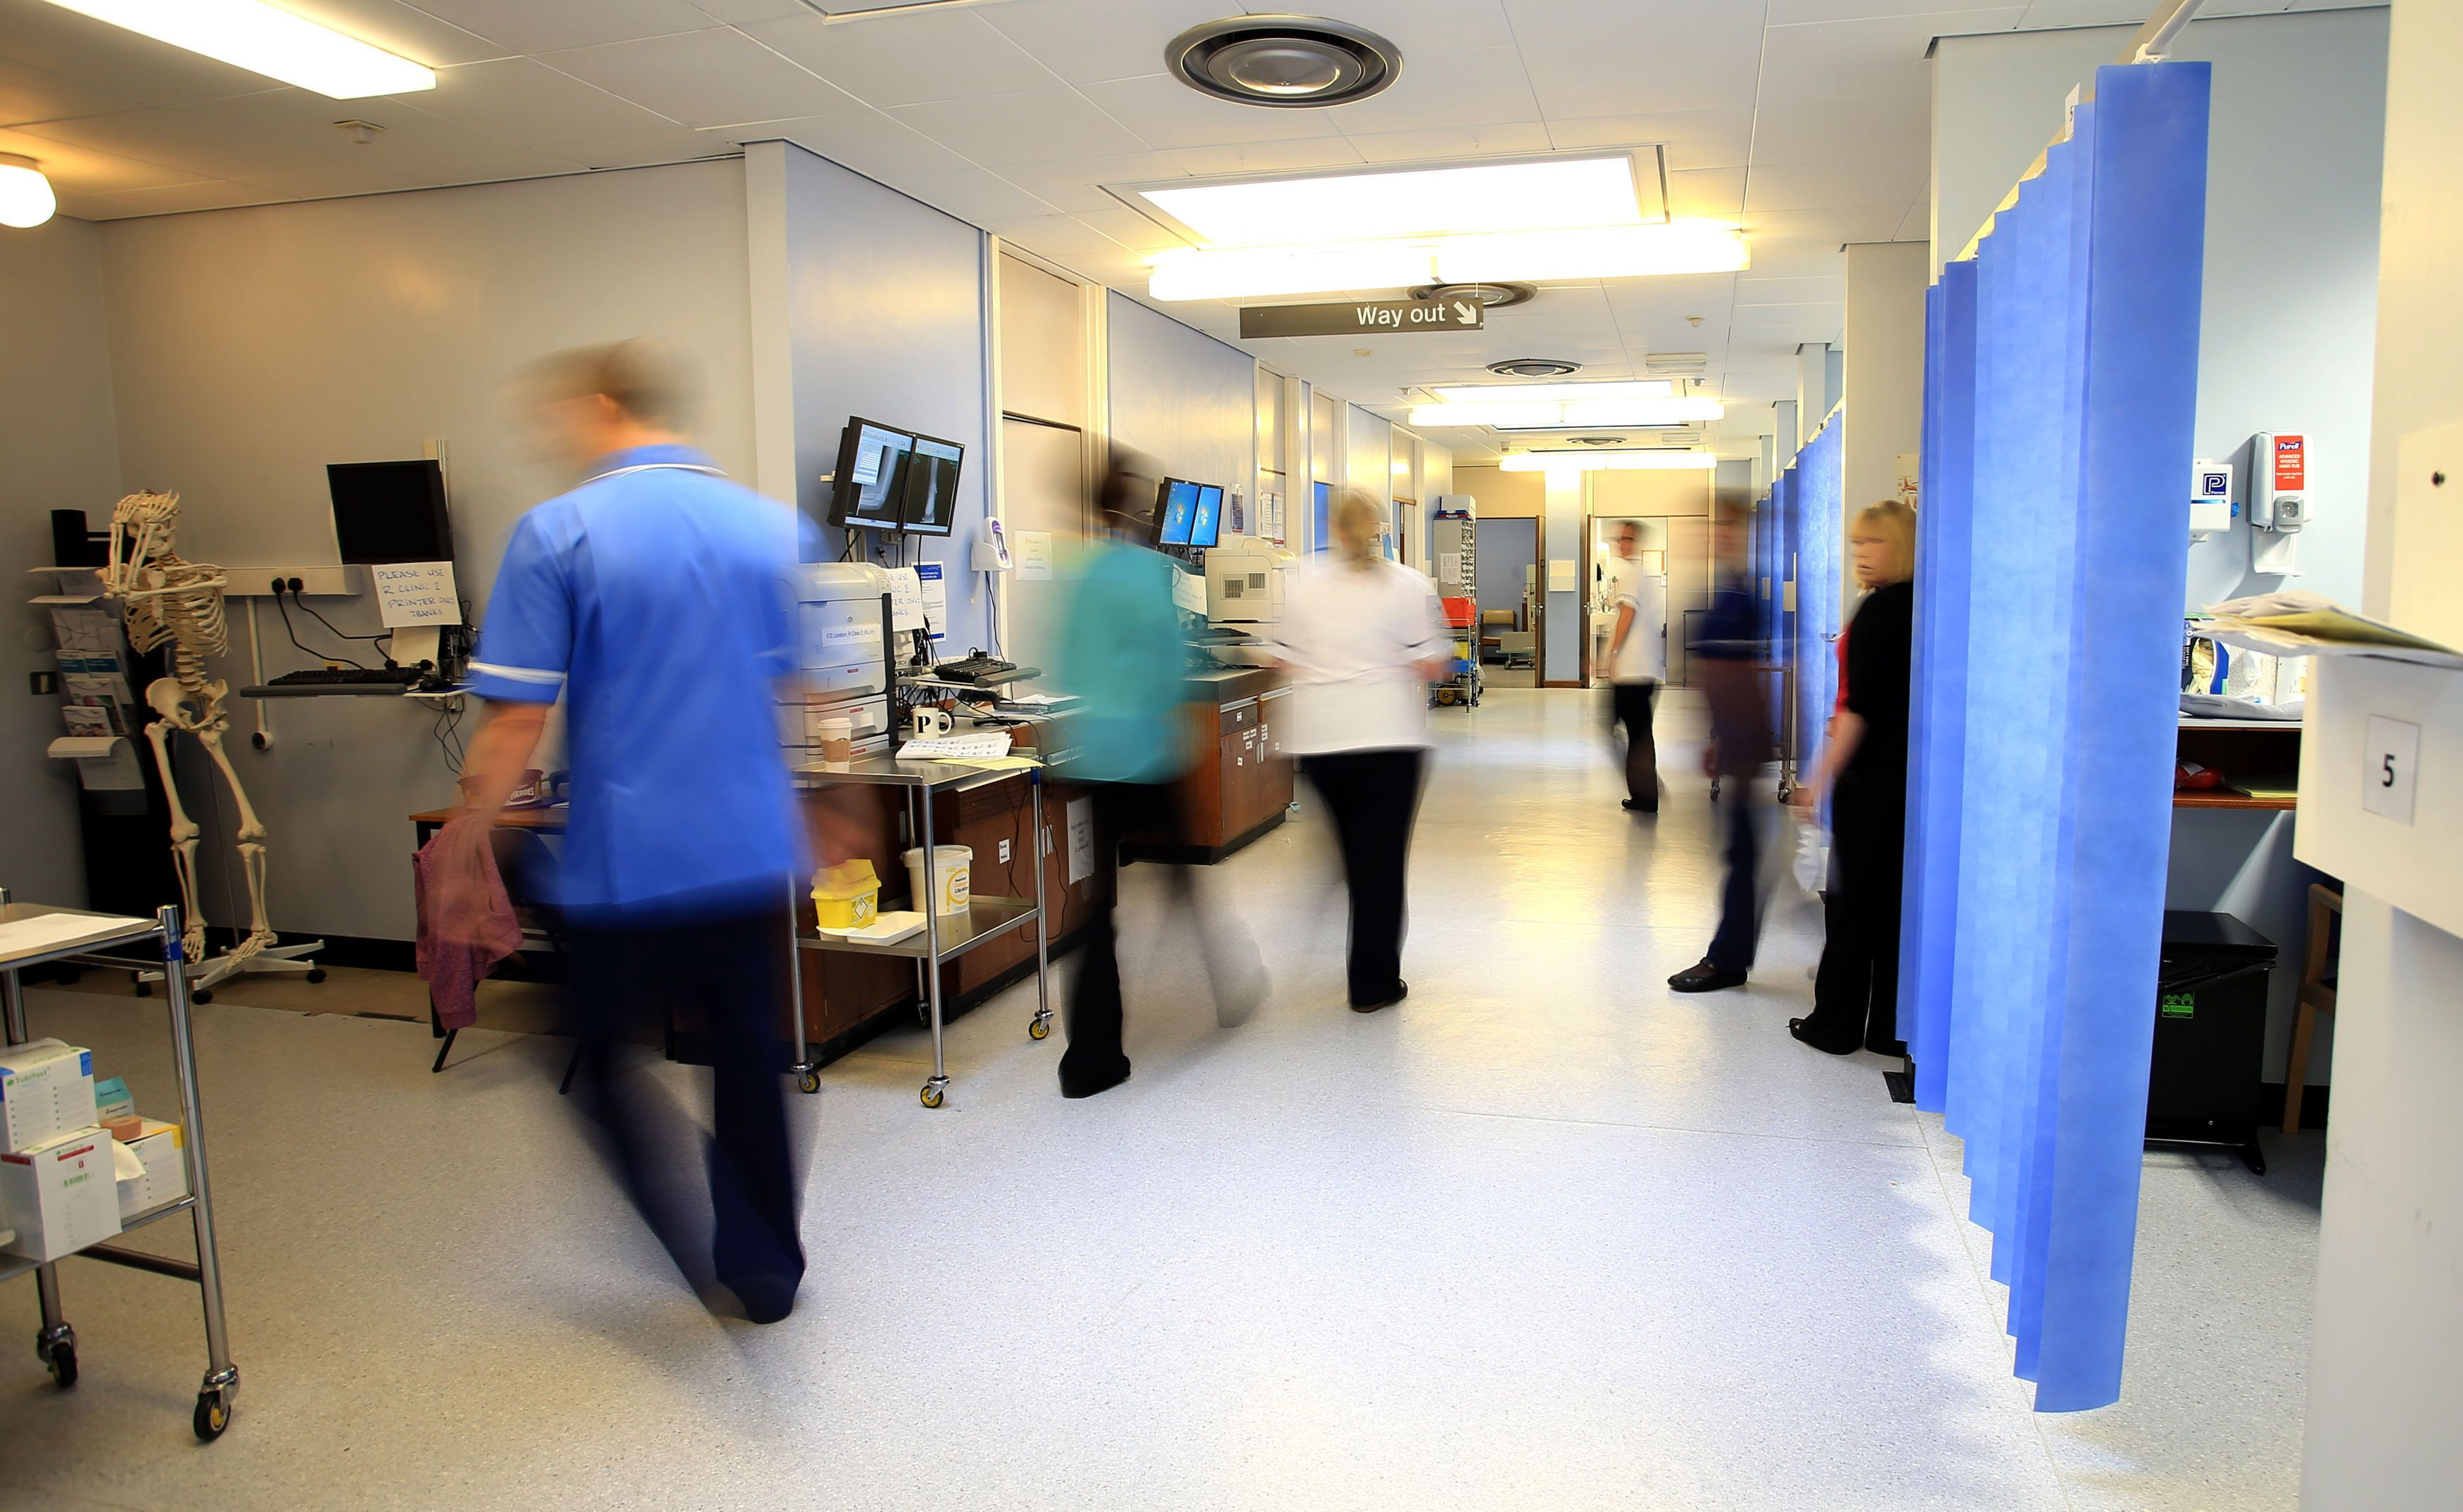 Doctors have warned the emergency care system is 'on its